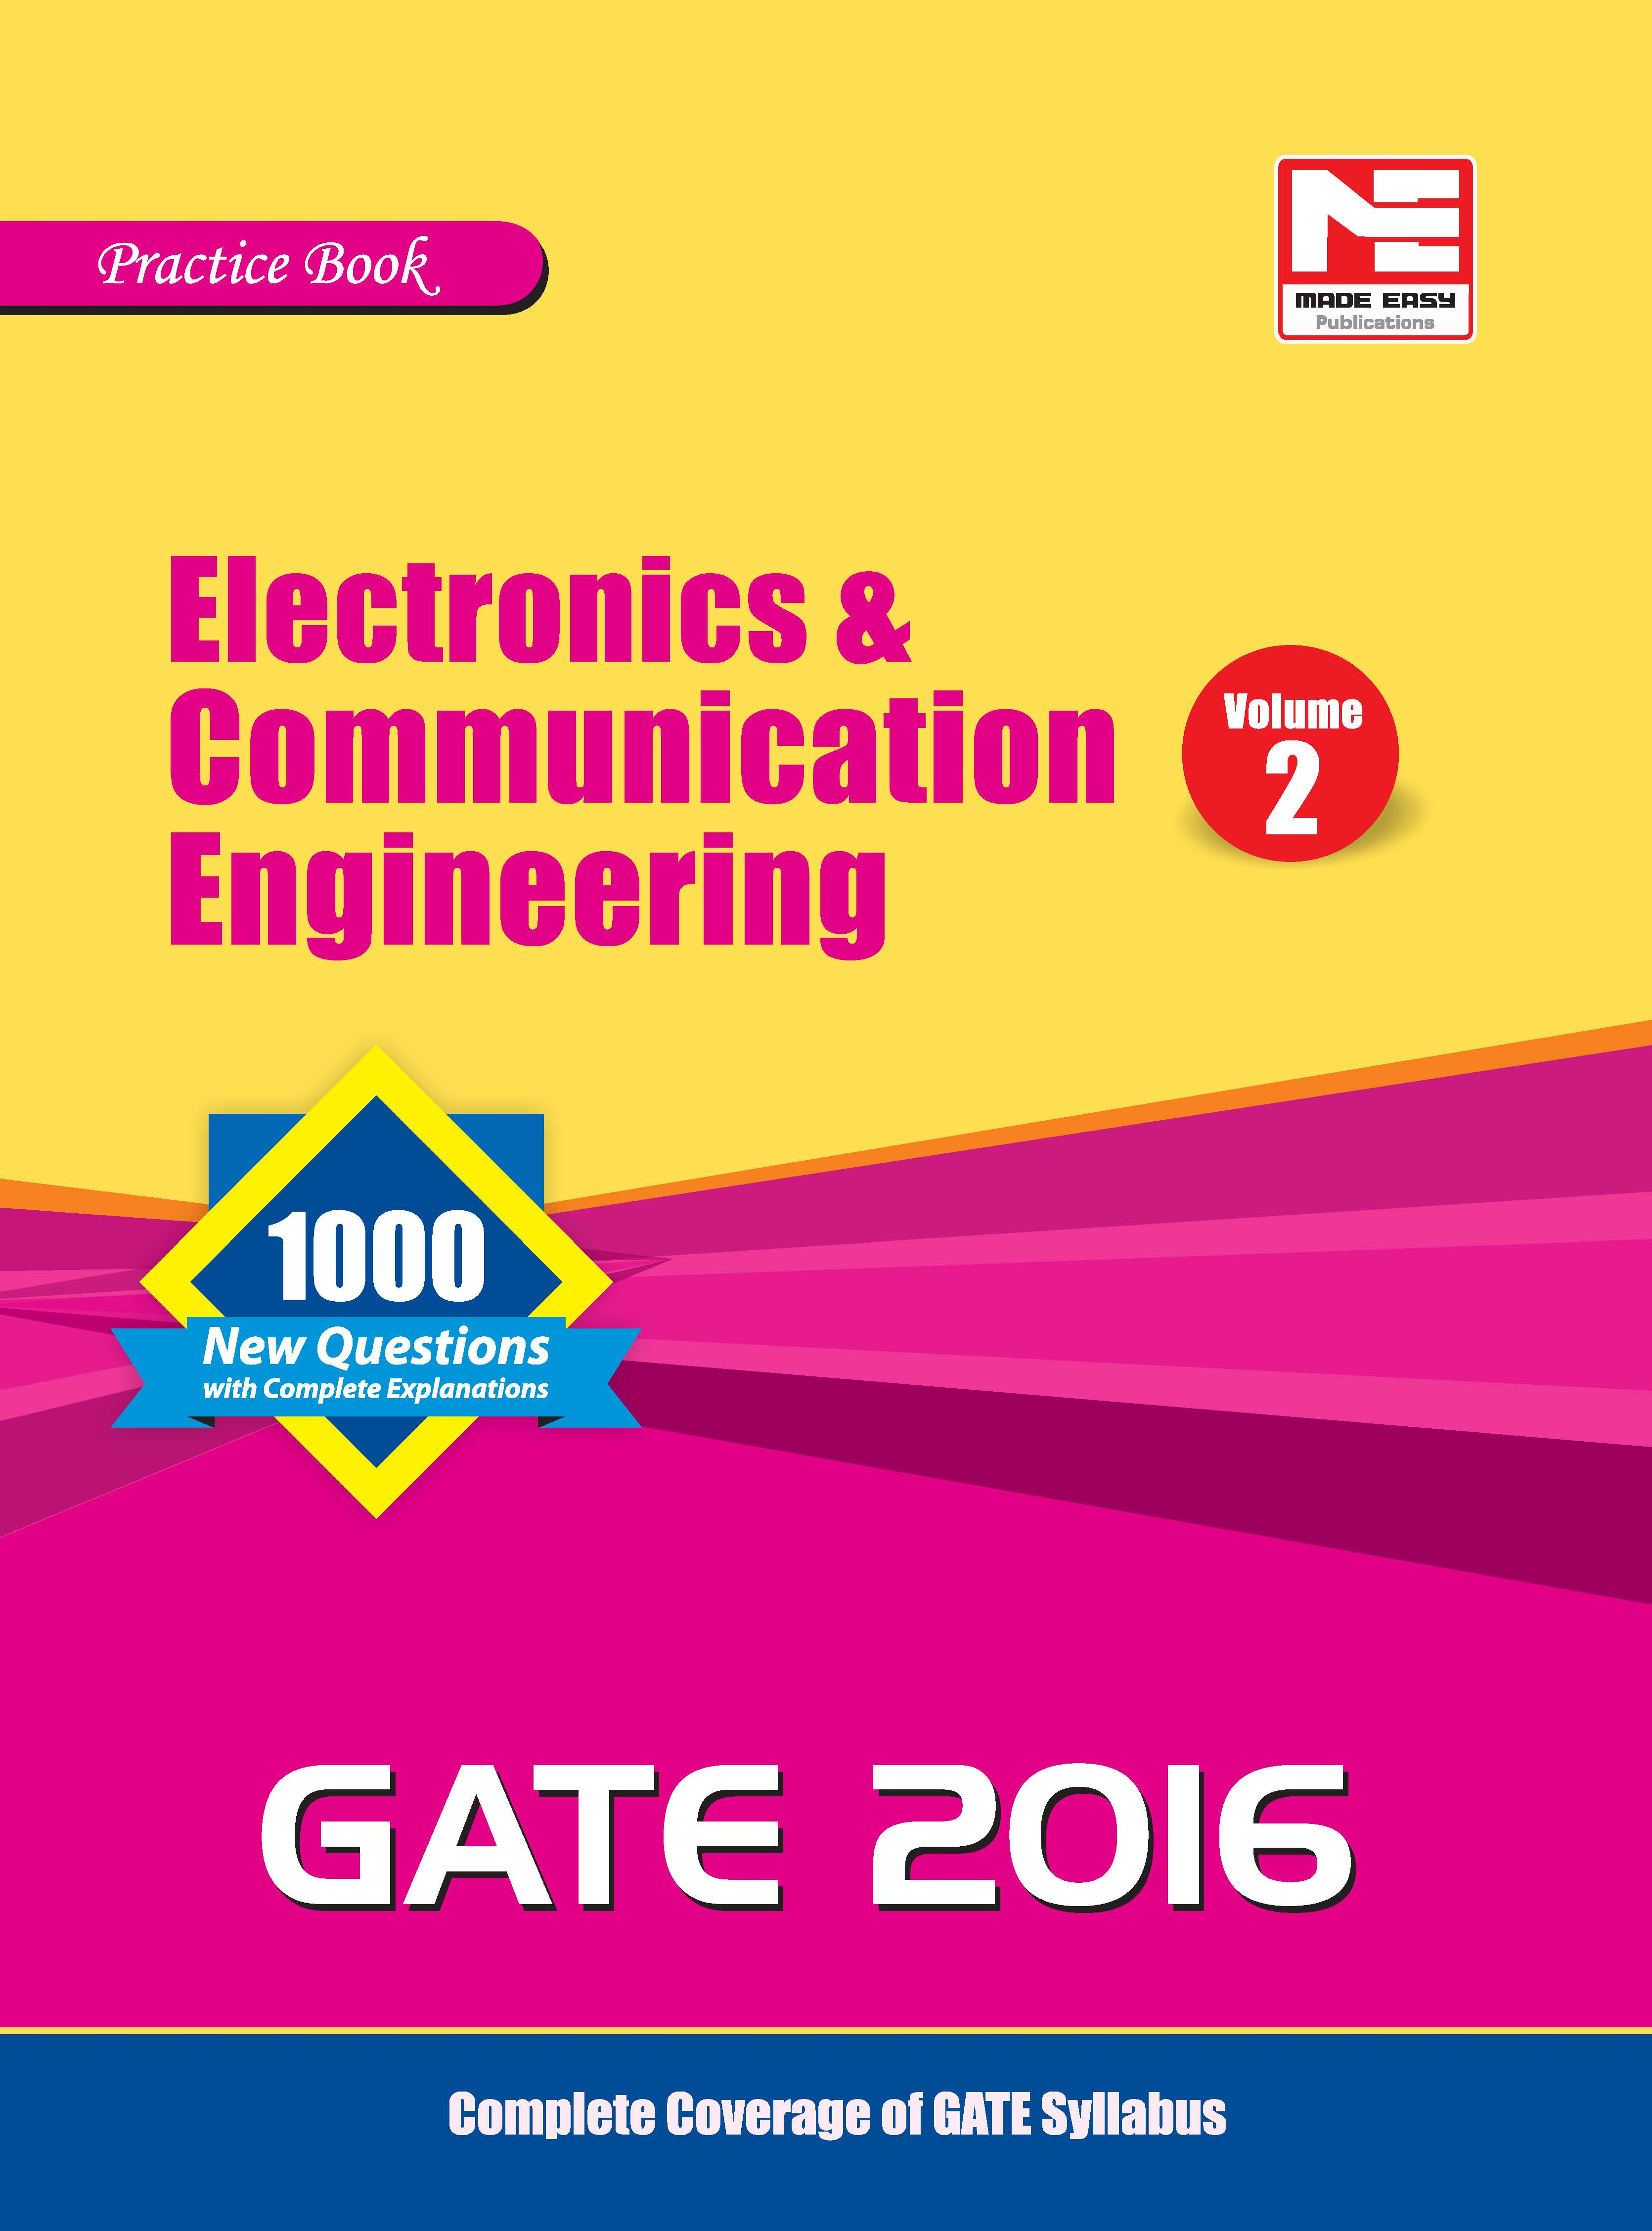 Gate Practice Book For Electronics & Comm. Eng. 2016 Vol. 1 by  on Textnook.com